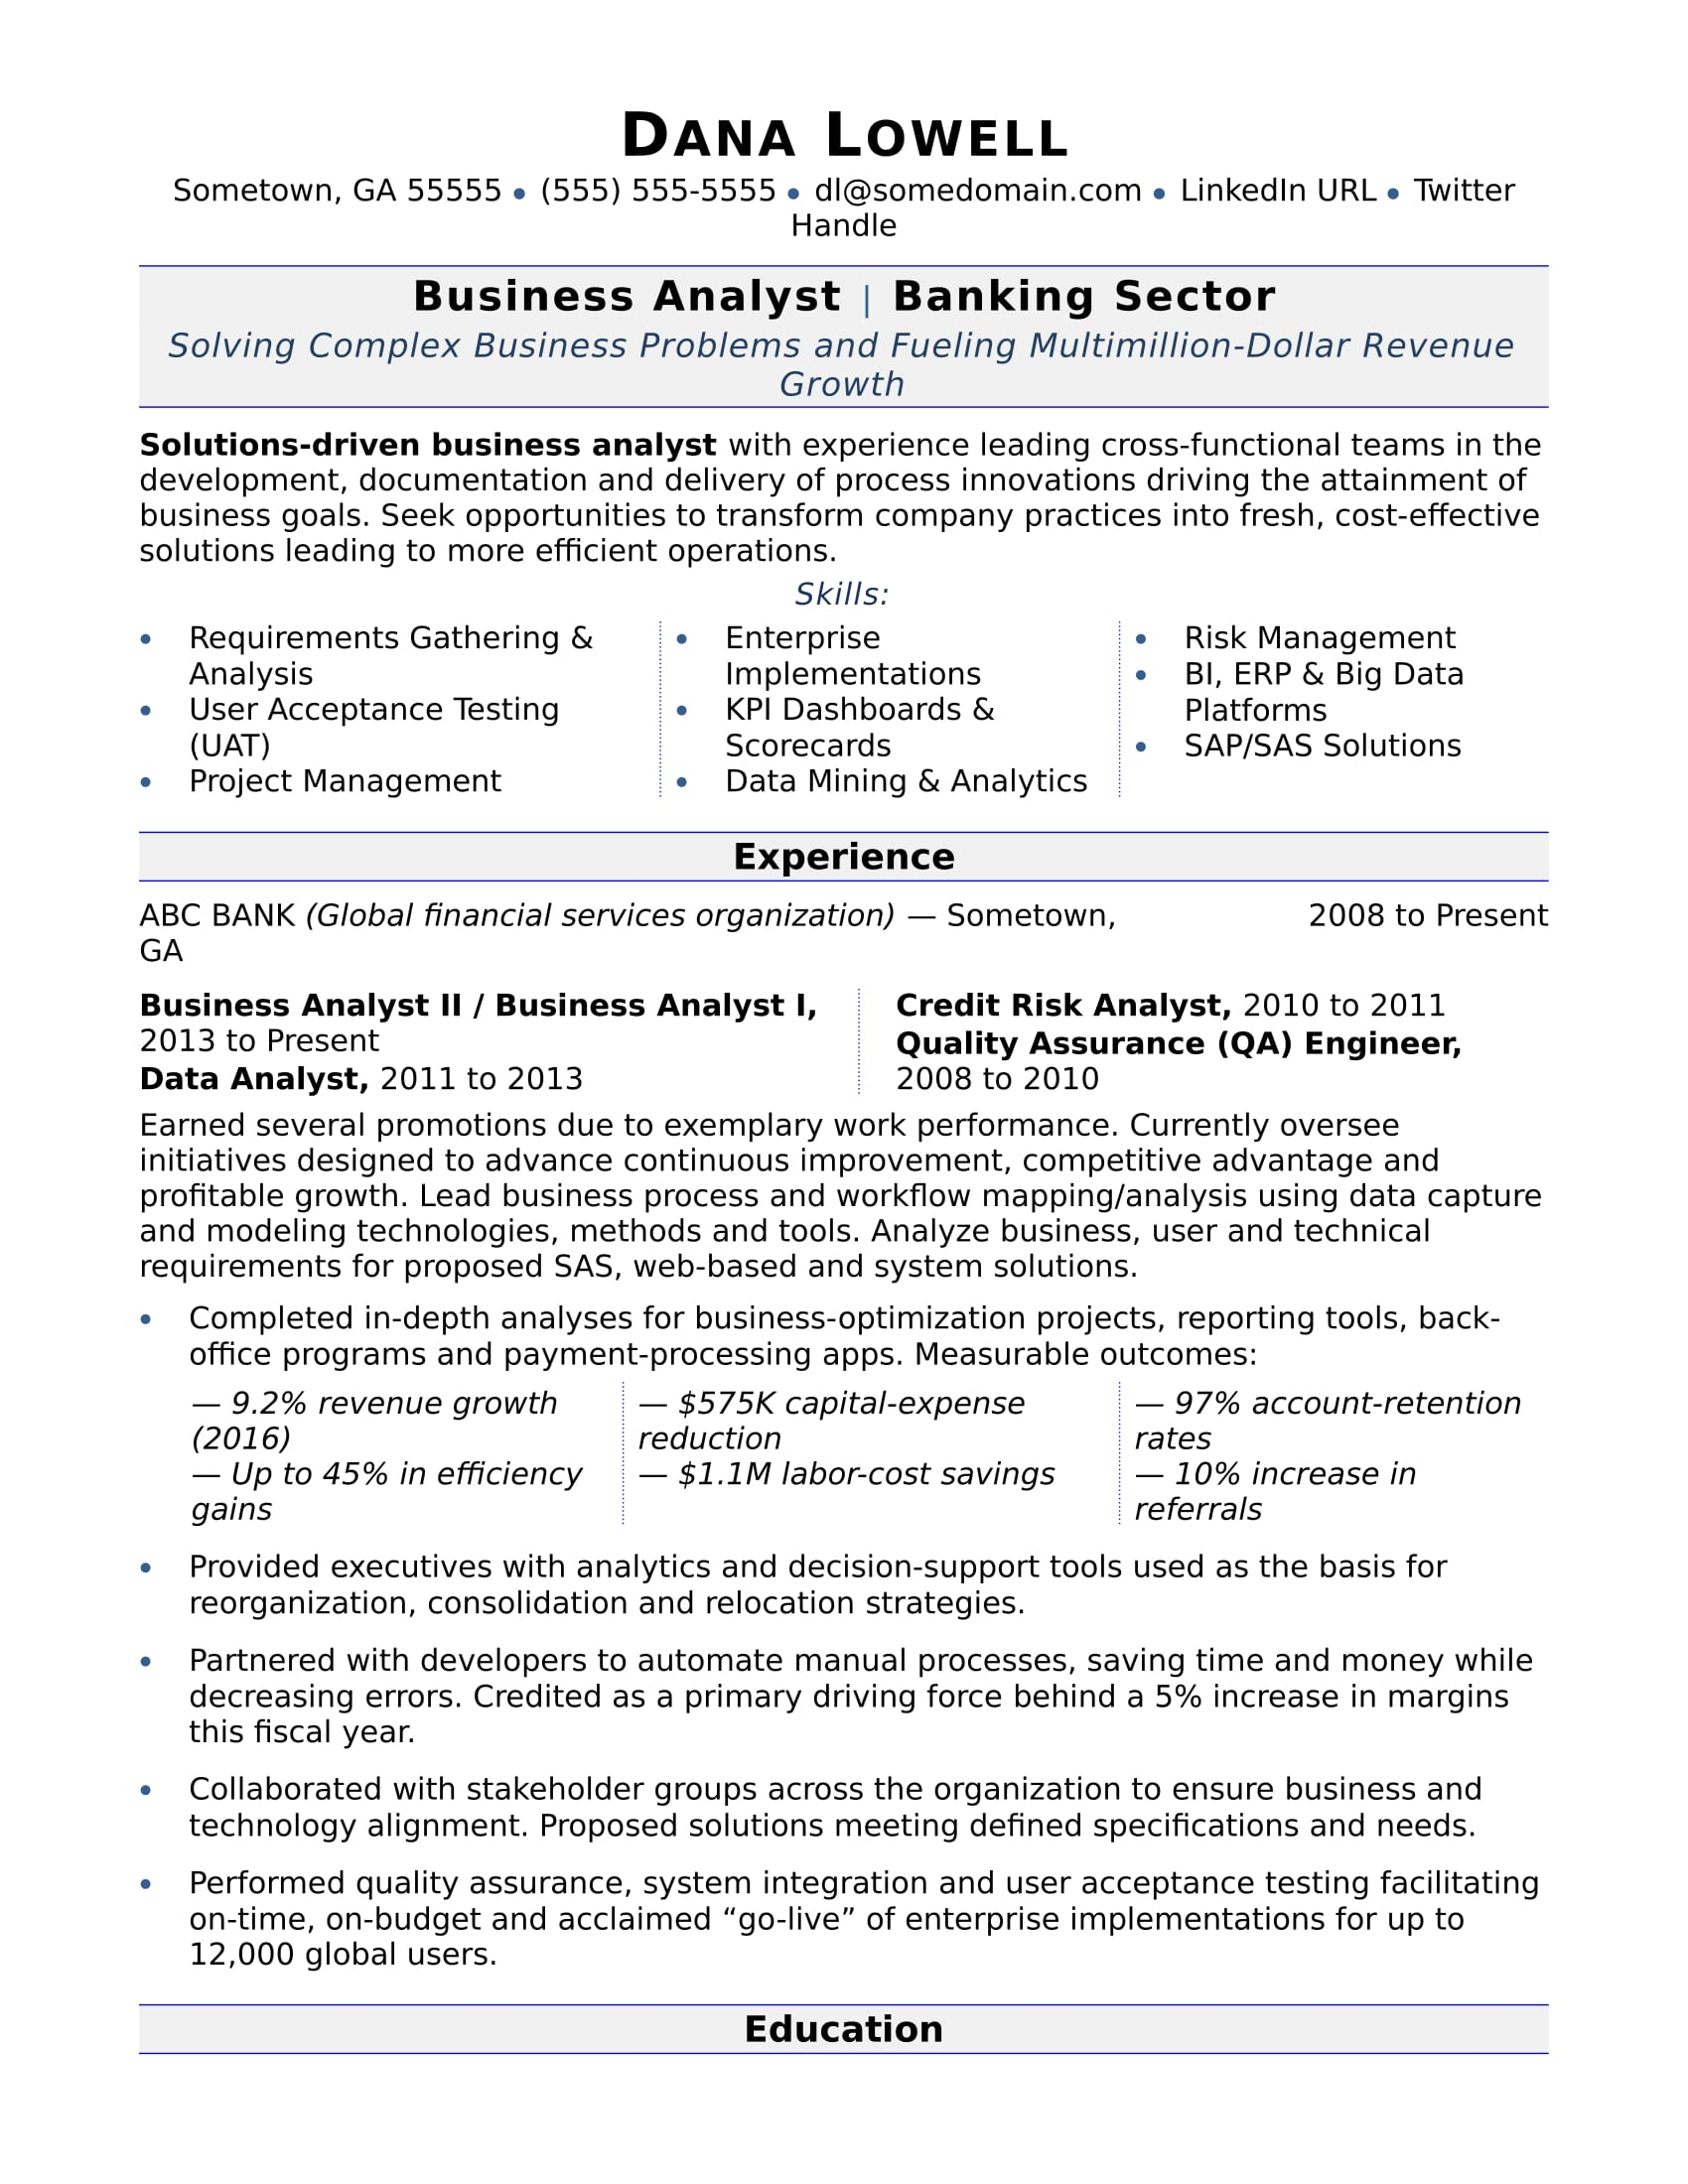 Business analyst resume sample monster business analyst resume sample accmission Choice Image